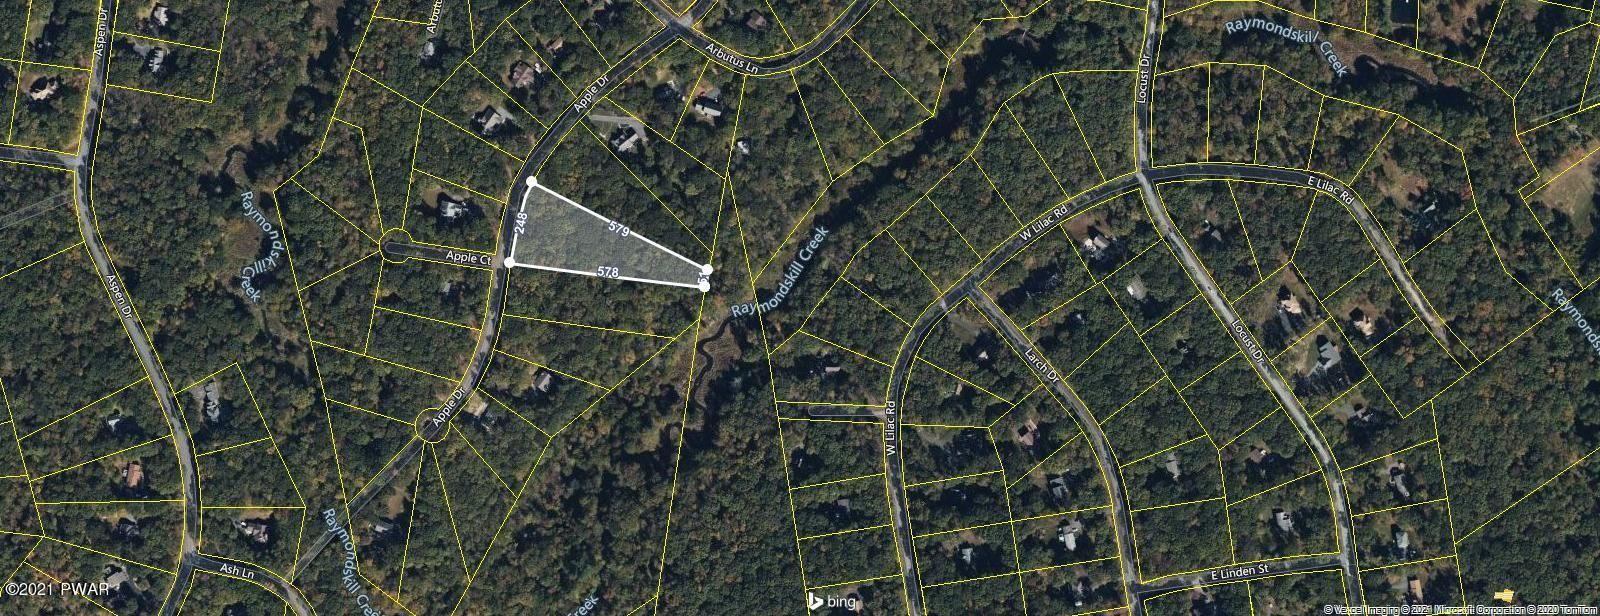 Photo of 160 Apple Dr, Milford, PA 18337 (MLS # 21-210)